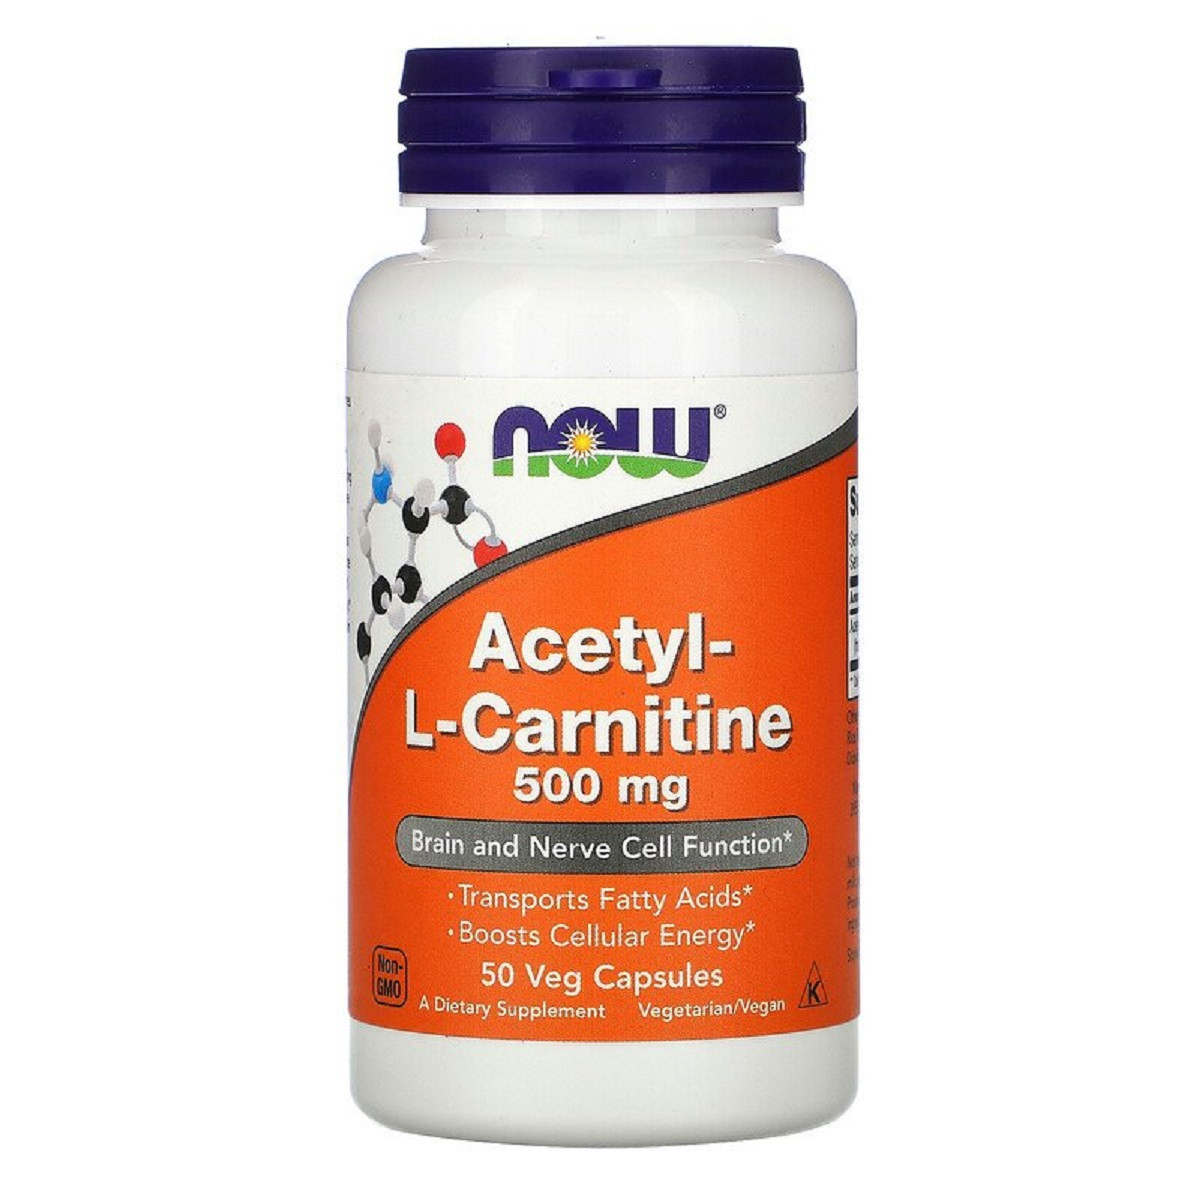 Ацетил-L-Карнитин, Acetyl-L-Carnitine, Now Foods, 500 мг, 50 вегетарианских капсул